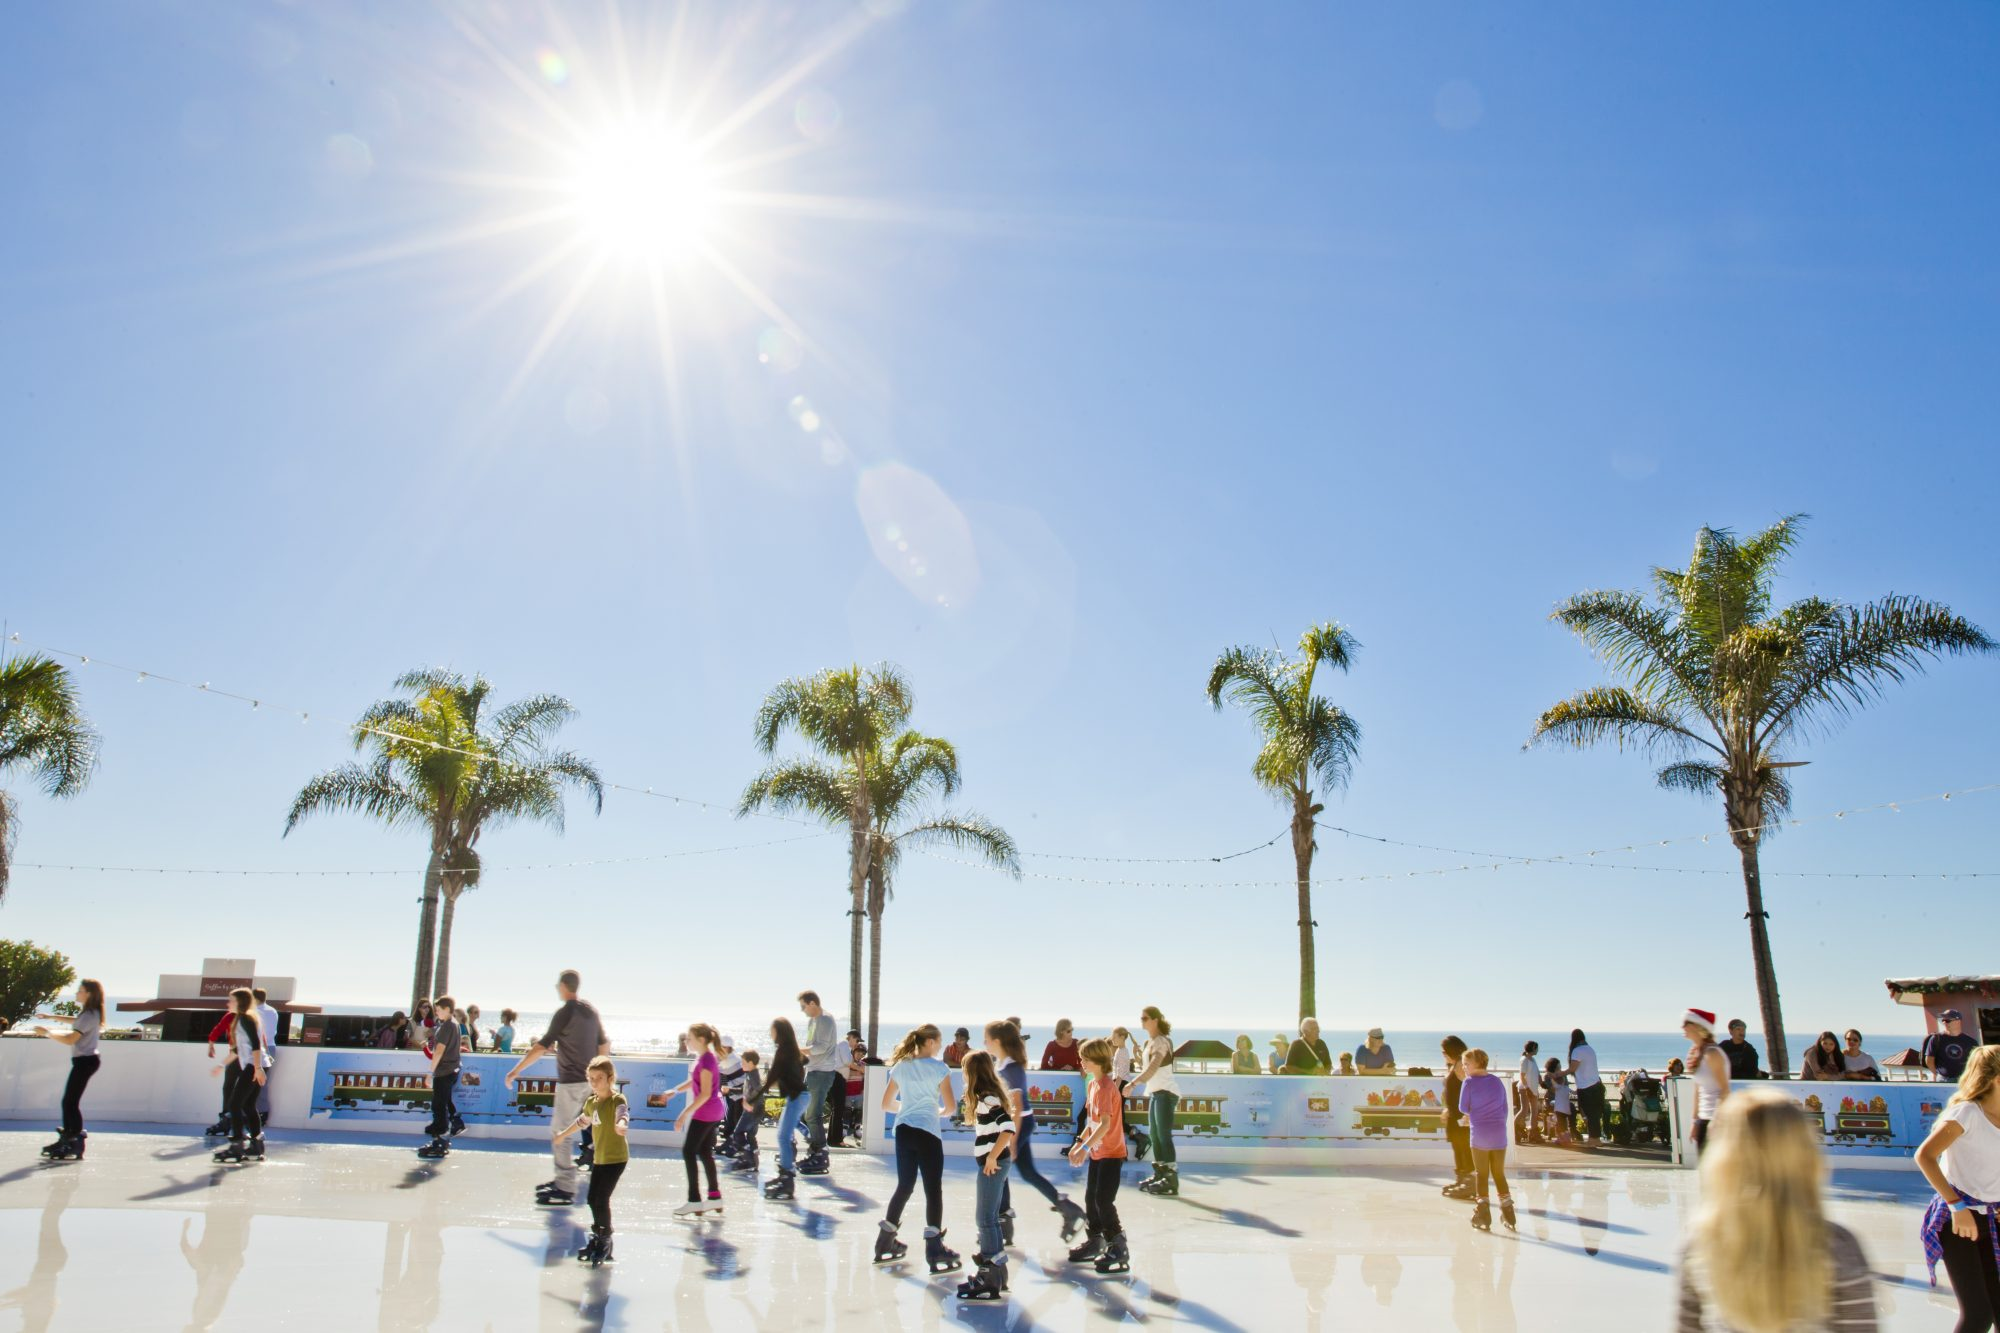 Children and adults ice skating on an outdoor ice rink at the historic Hotel Del Coronado next to the Pacific Ocean.